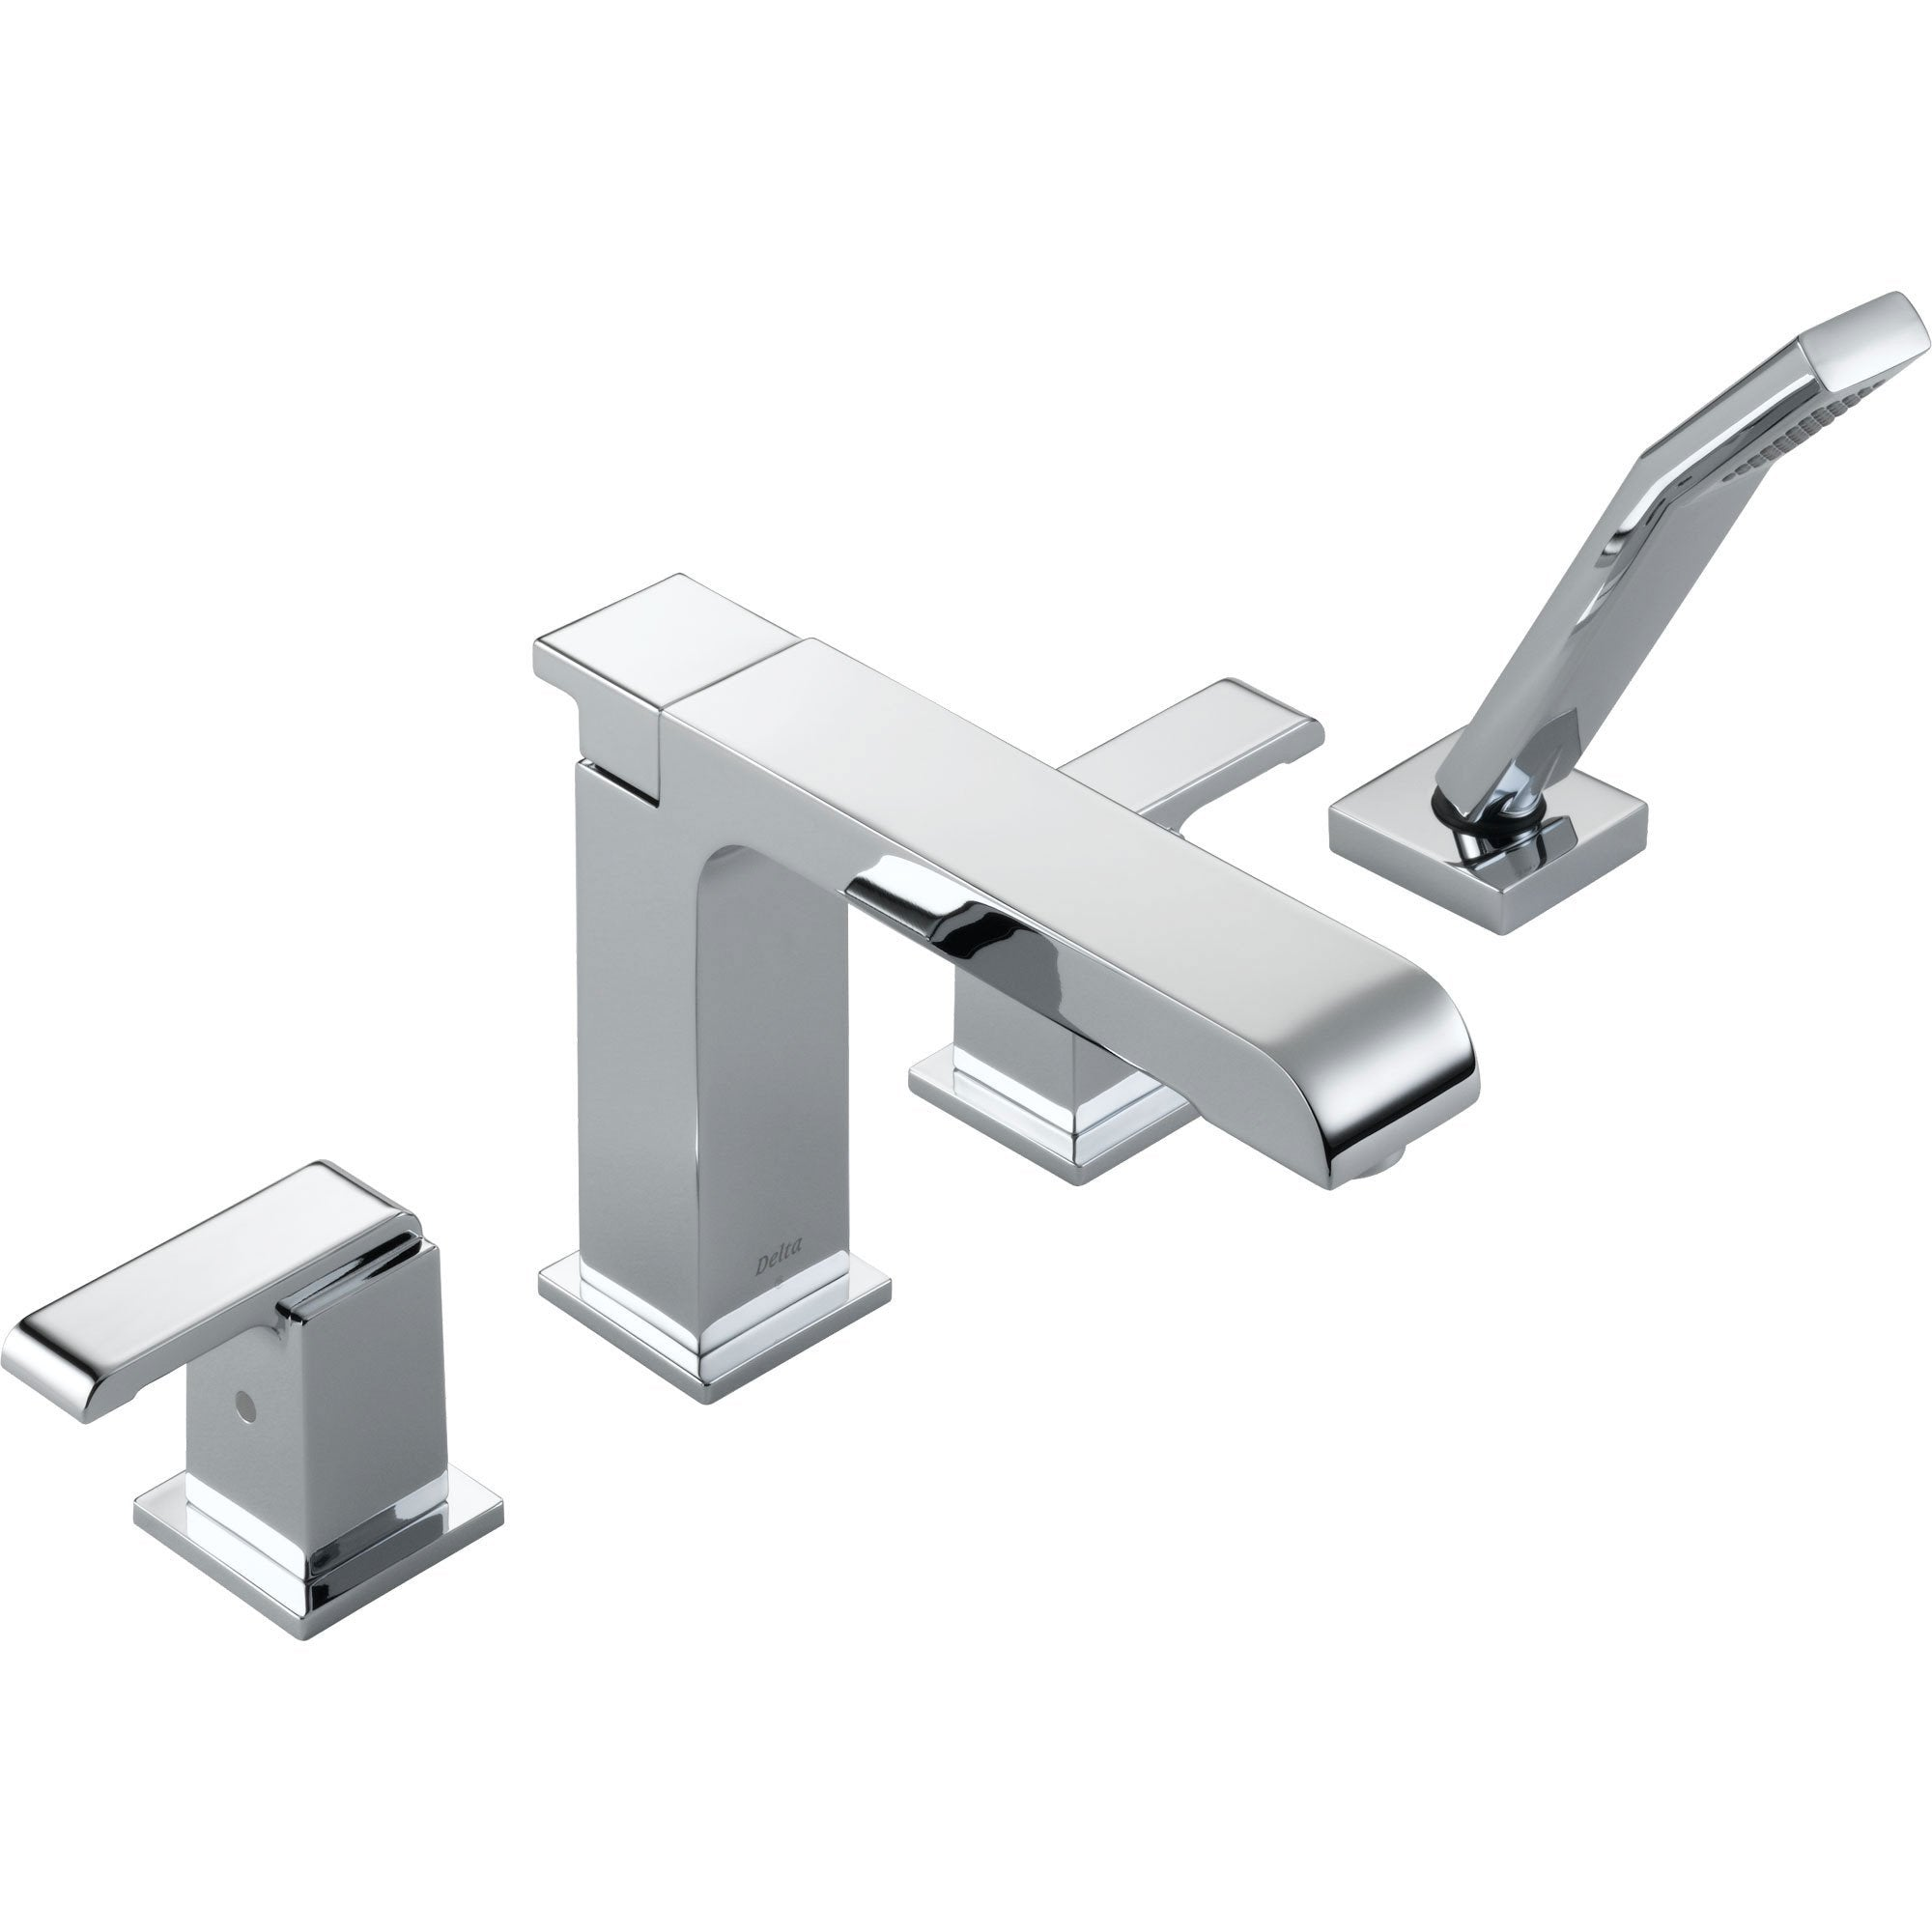 Delta Arzo Modern Square Chrome Roman Tub Faucet with Handshower and Valve D880V